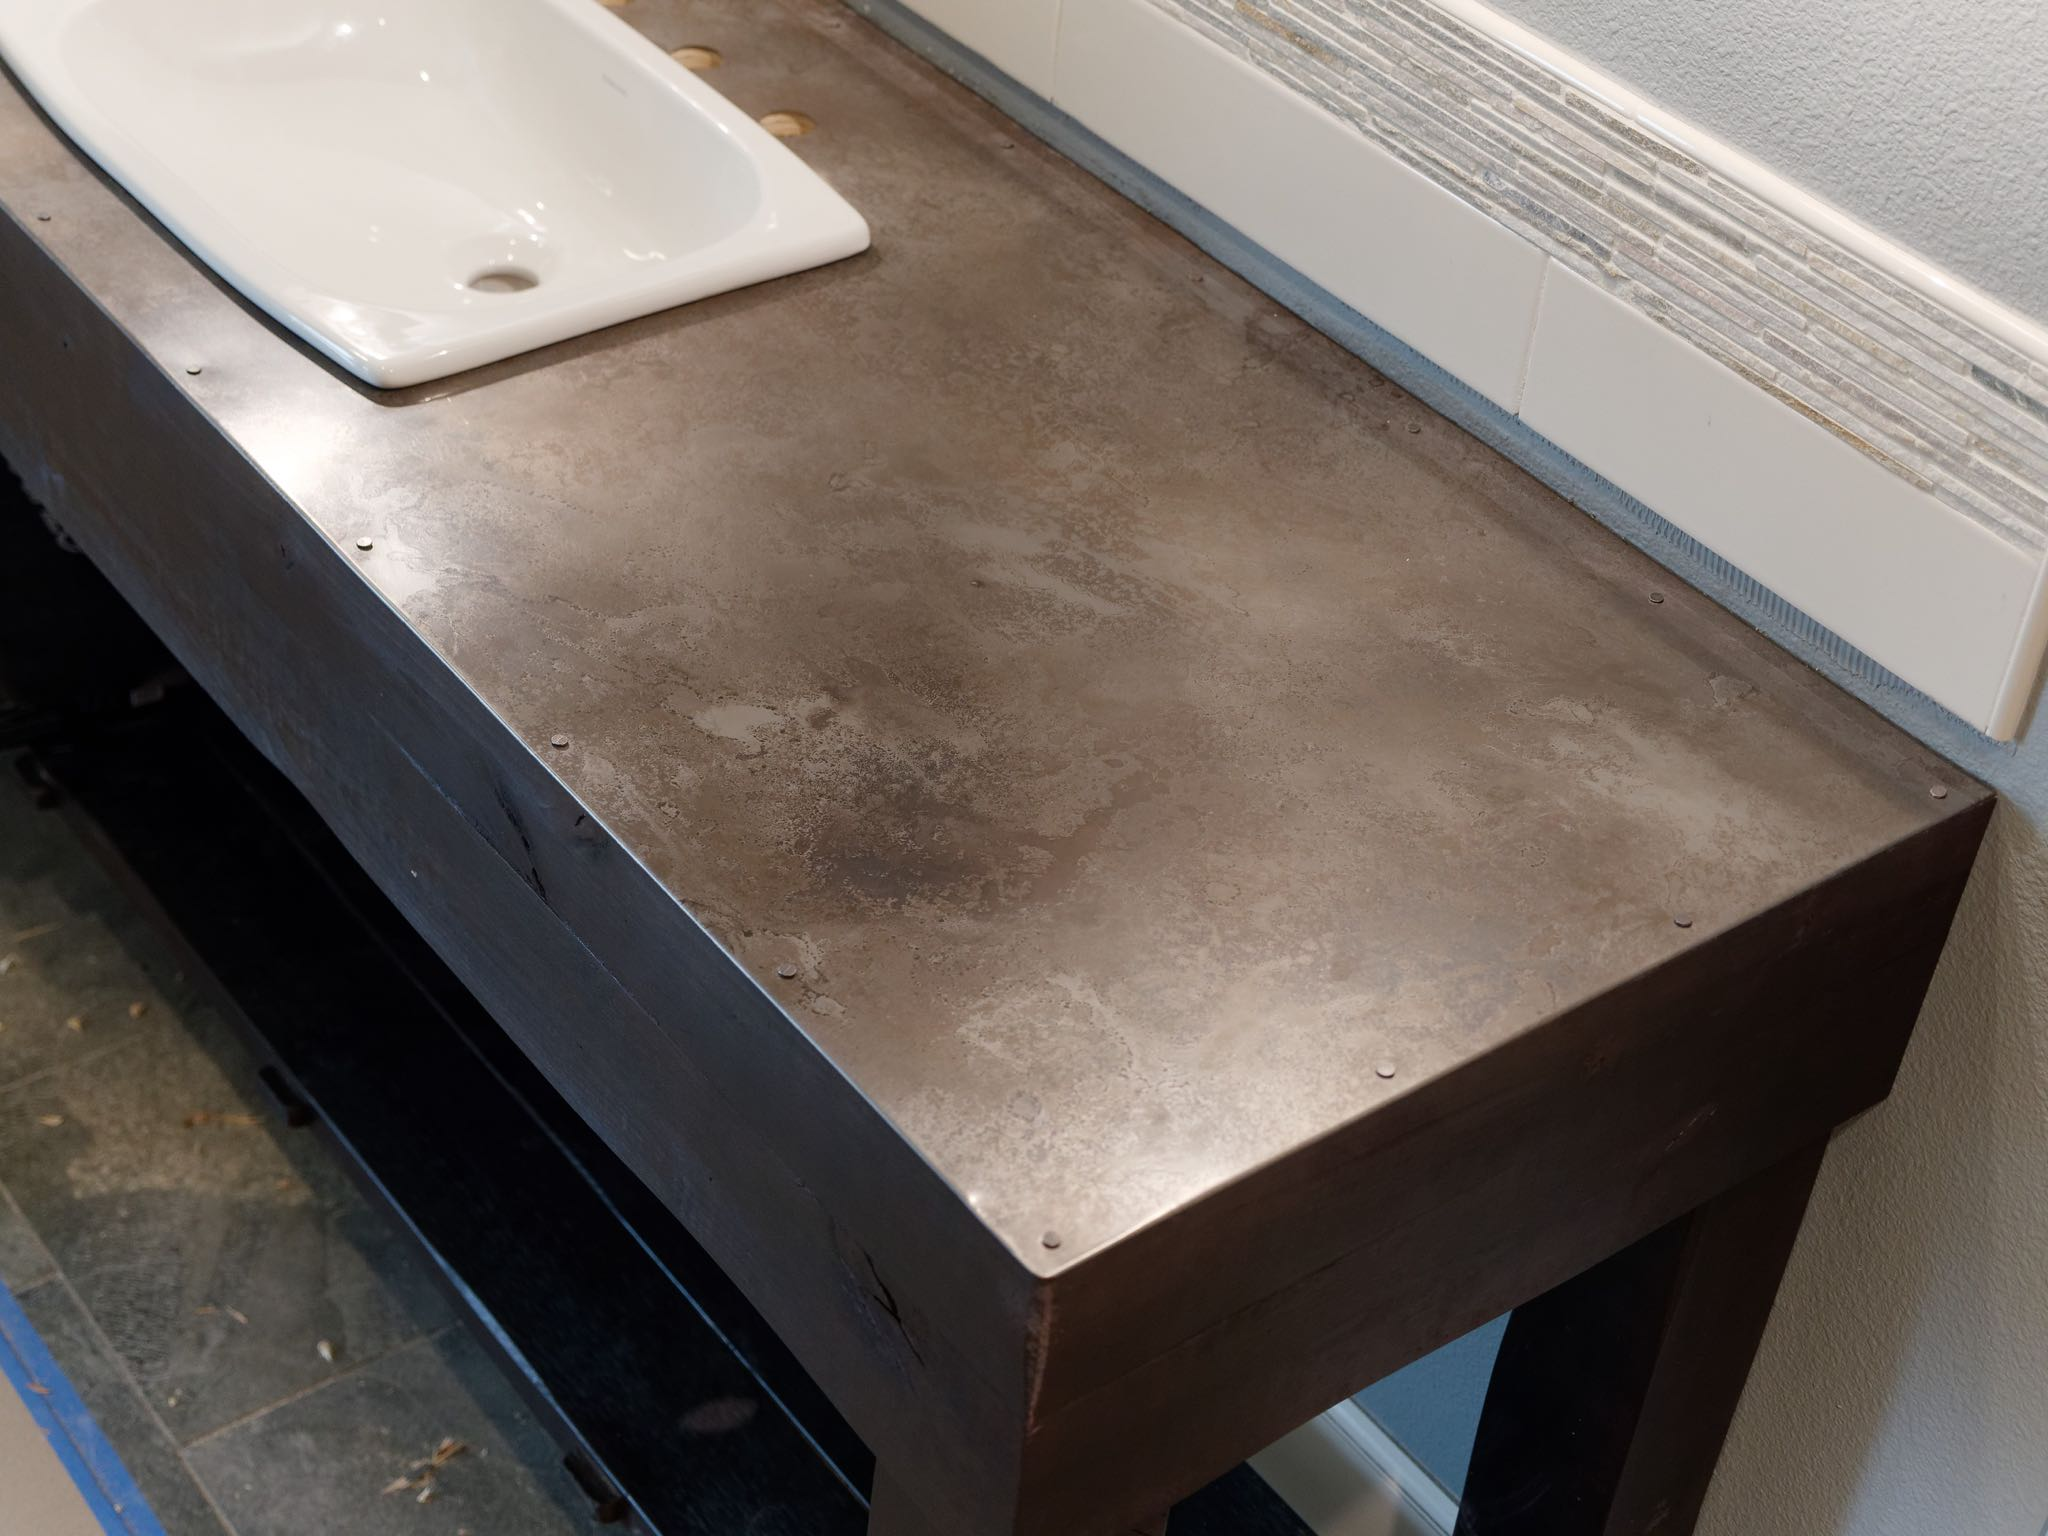 Volcanic Stainless Countertop